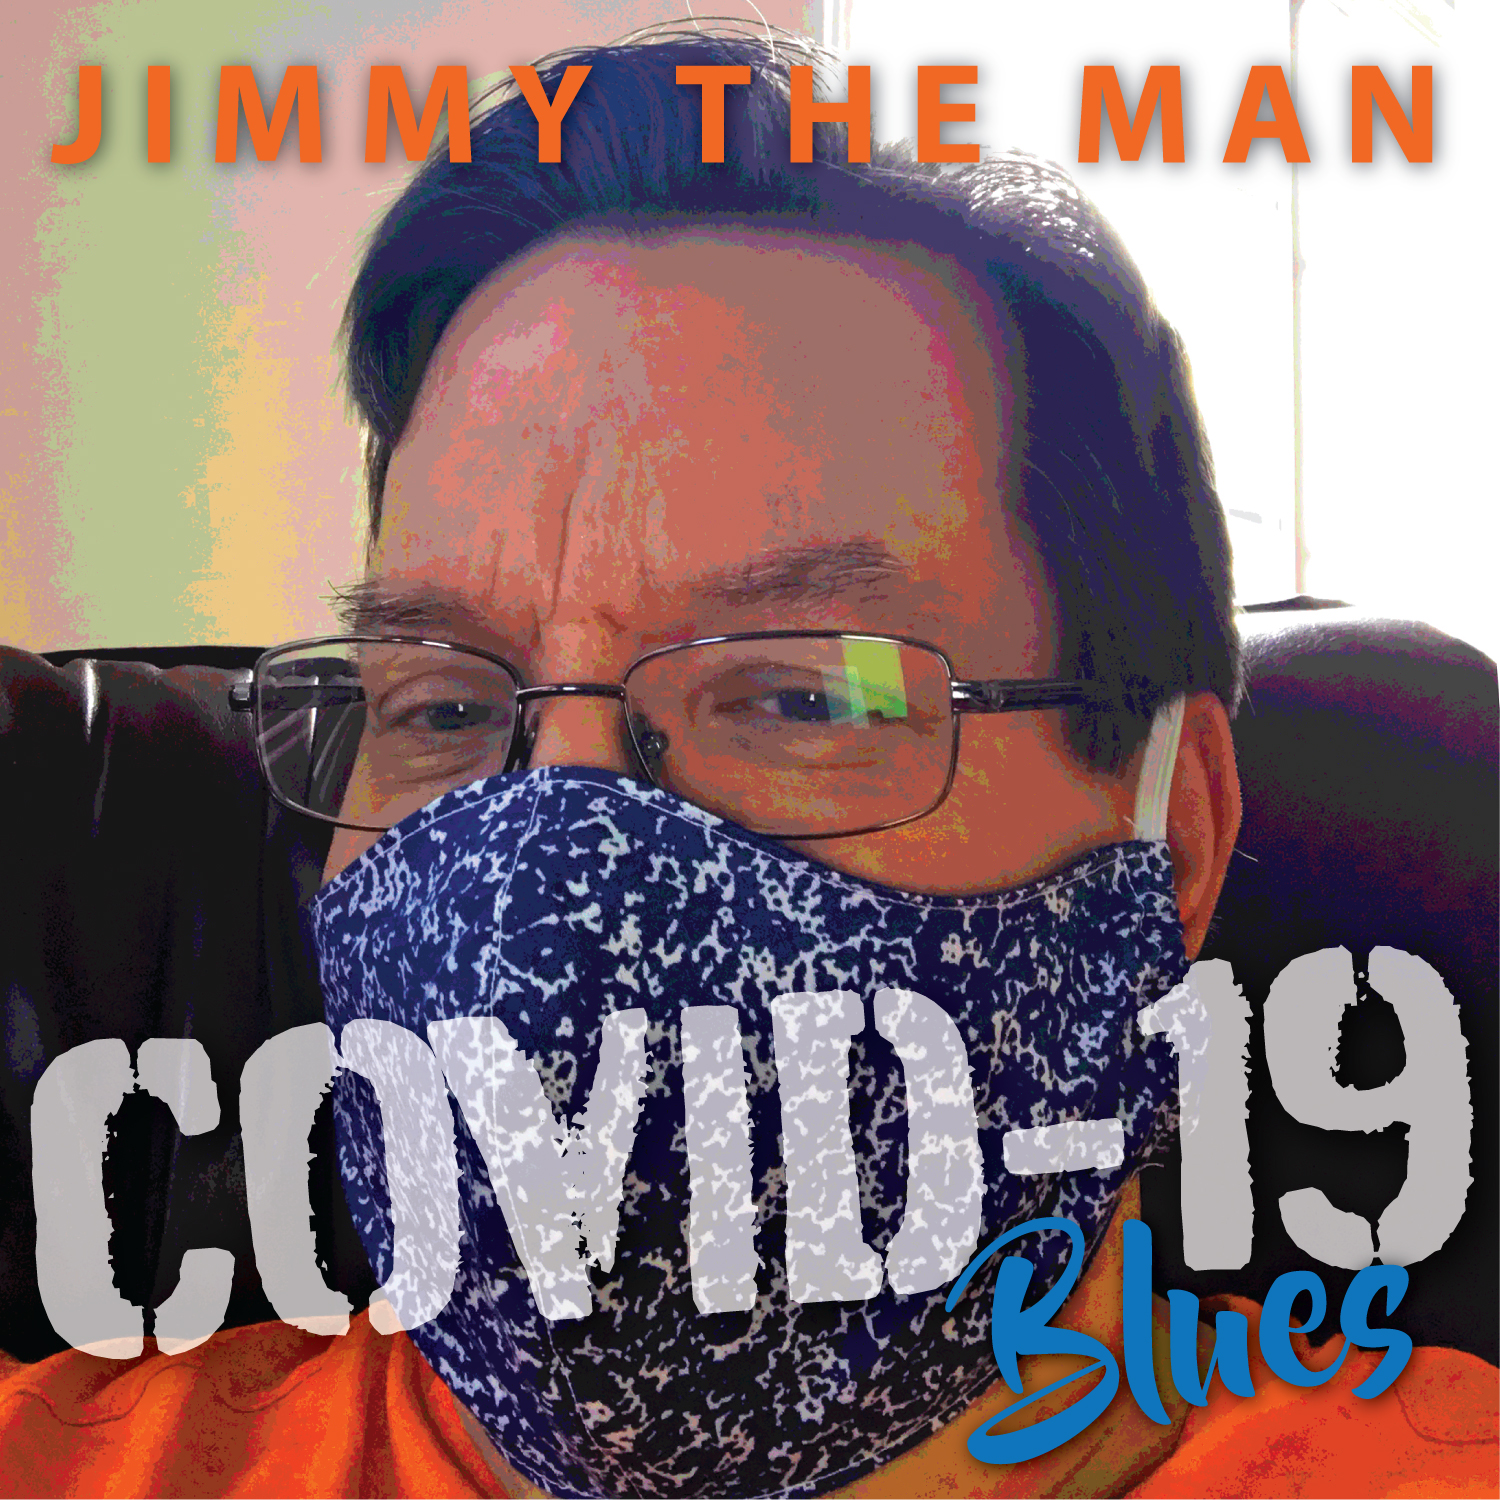 Jimmy-the-Man-Cover